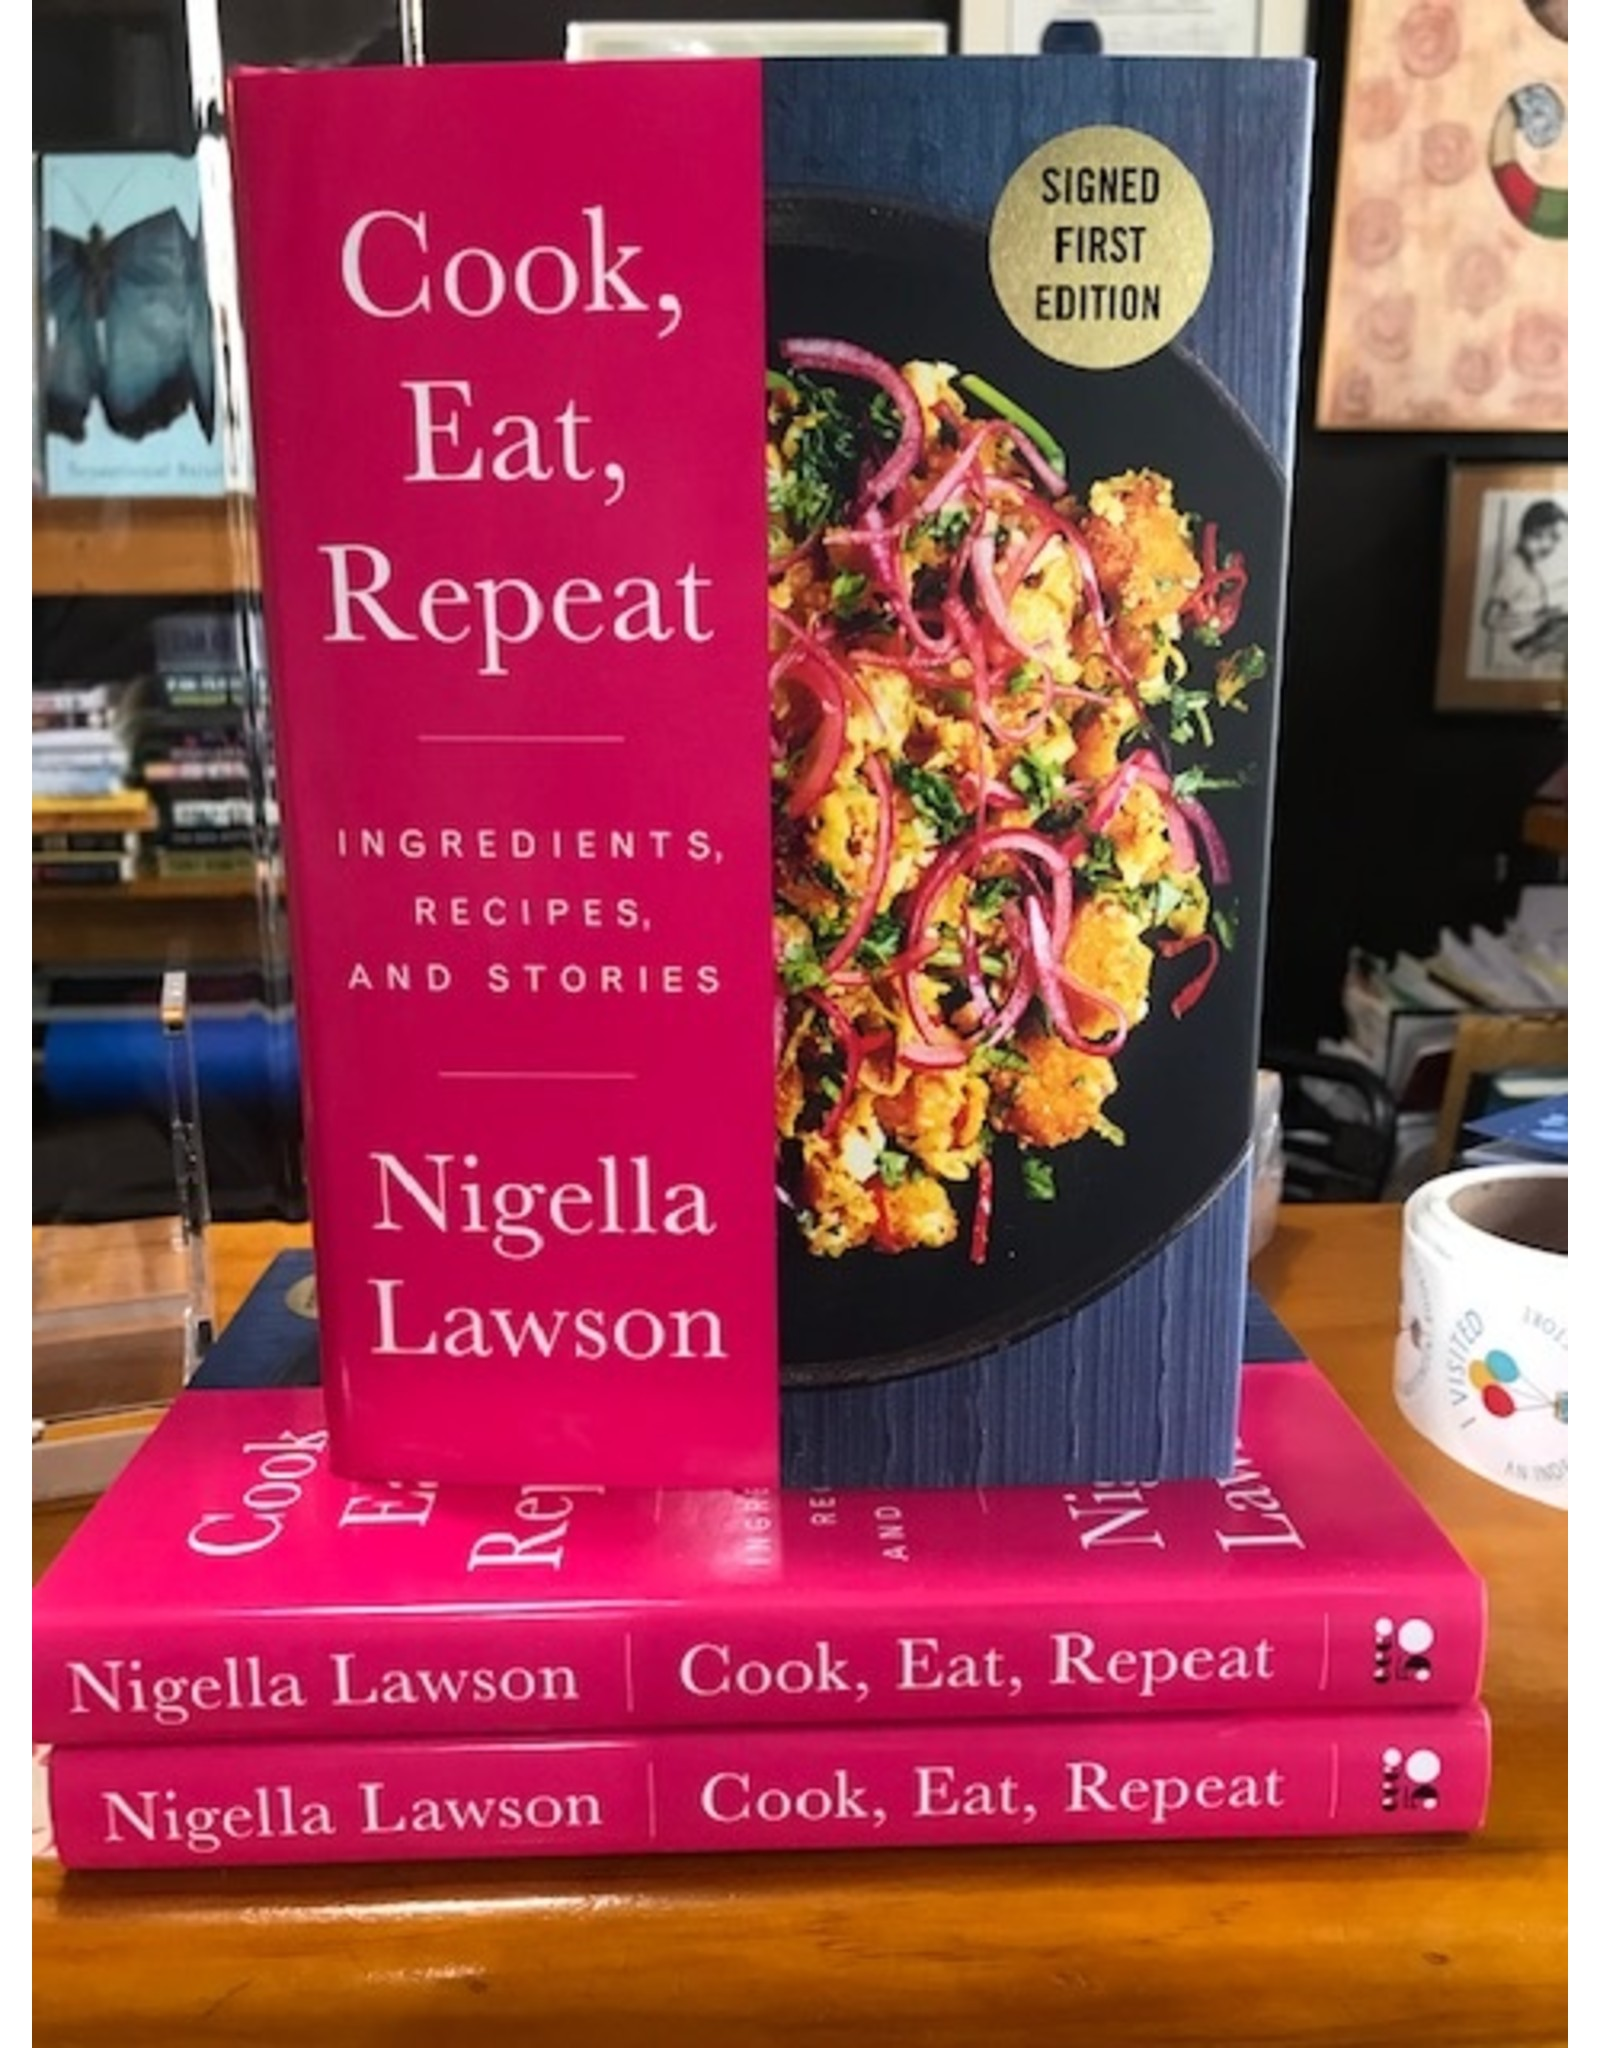 Books Cook, Eat, Repeat : Ingredients, Recipes and Stories by Nigella Lawson {Signed First Edition} (IBD21)